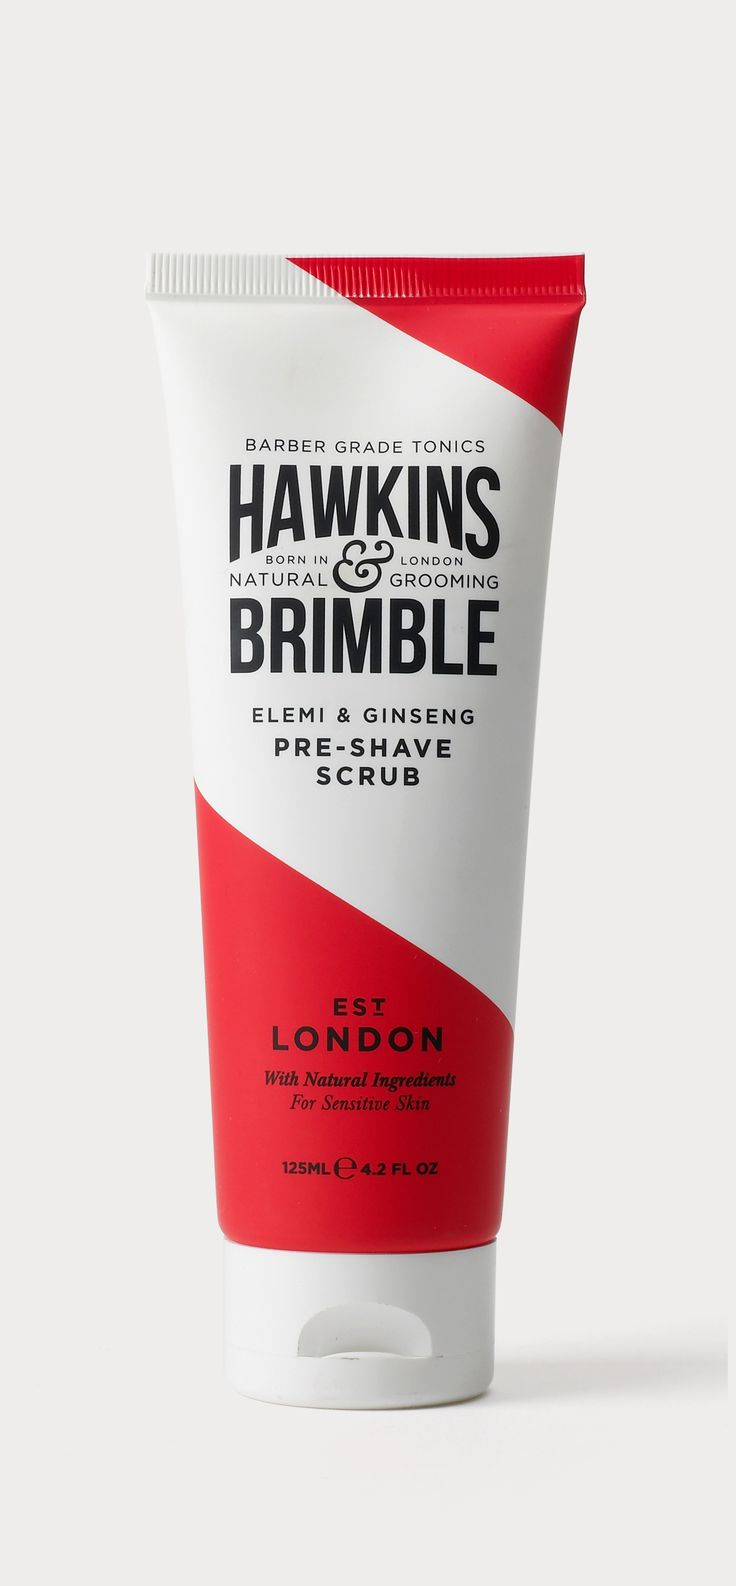 Brand identity and packaging design for Hawkins and Brimble. The brief was to design a mens grooming brand from the ground up. For the Hawkins & Brimble branding we developed a bespoke typography style based on beautiful vintage barber signage and branded stamps to give a sense of heritage and efficacy.  A vibrant flash of red cutting through the pack, indicative of traditional barber poles yet angular and tightly cropped, created a classic and fresh look.